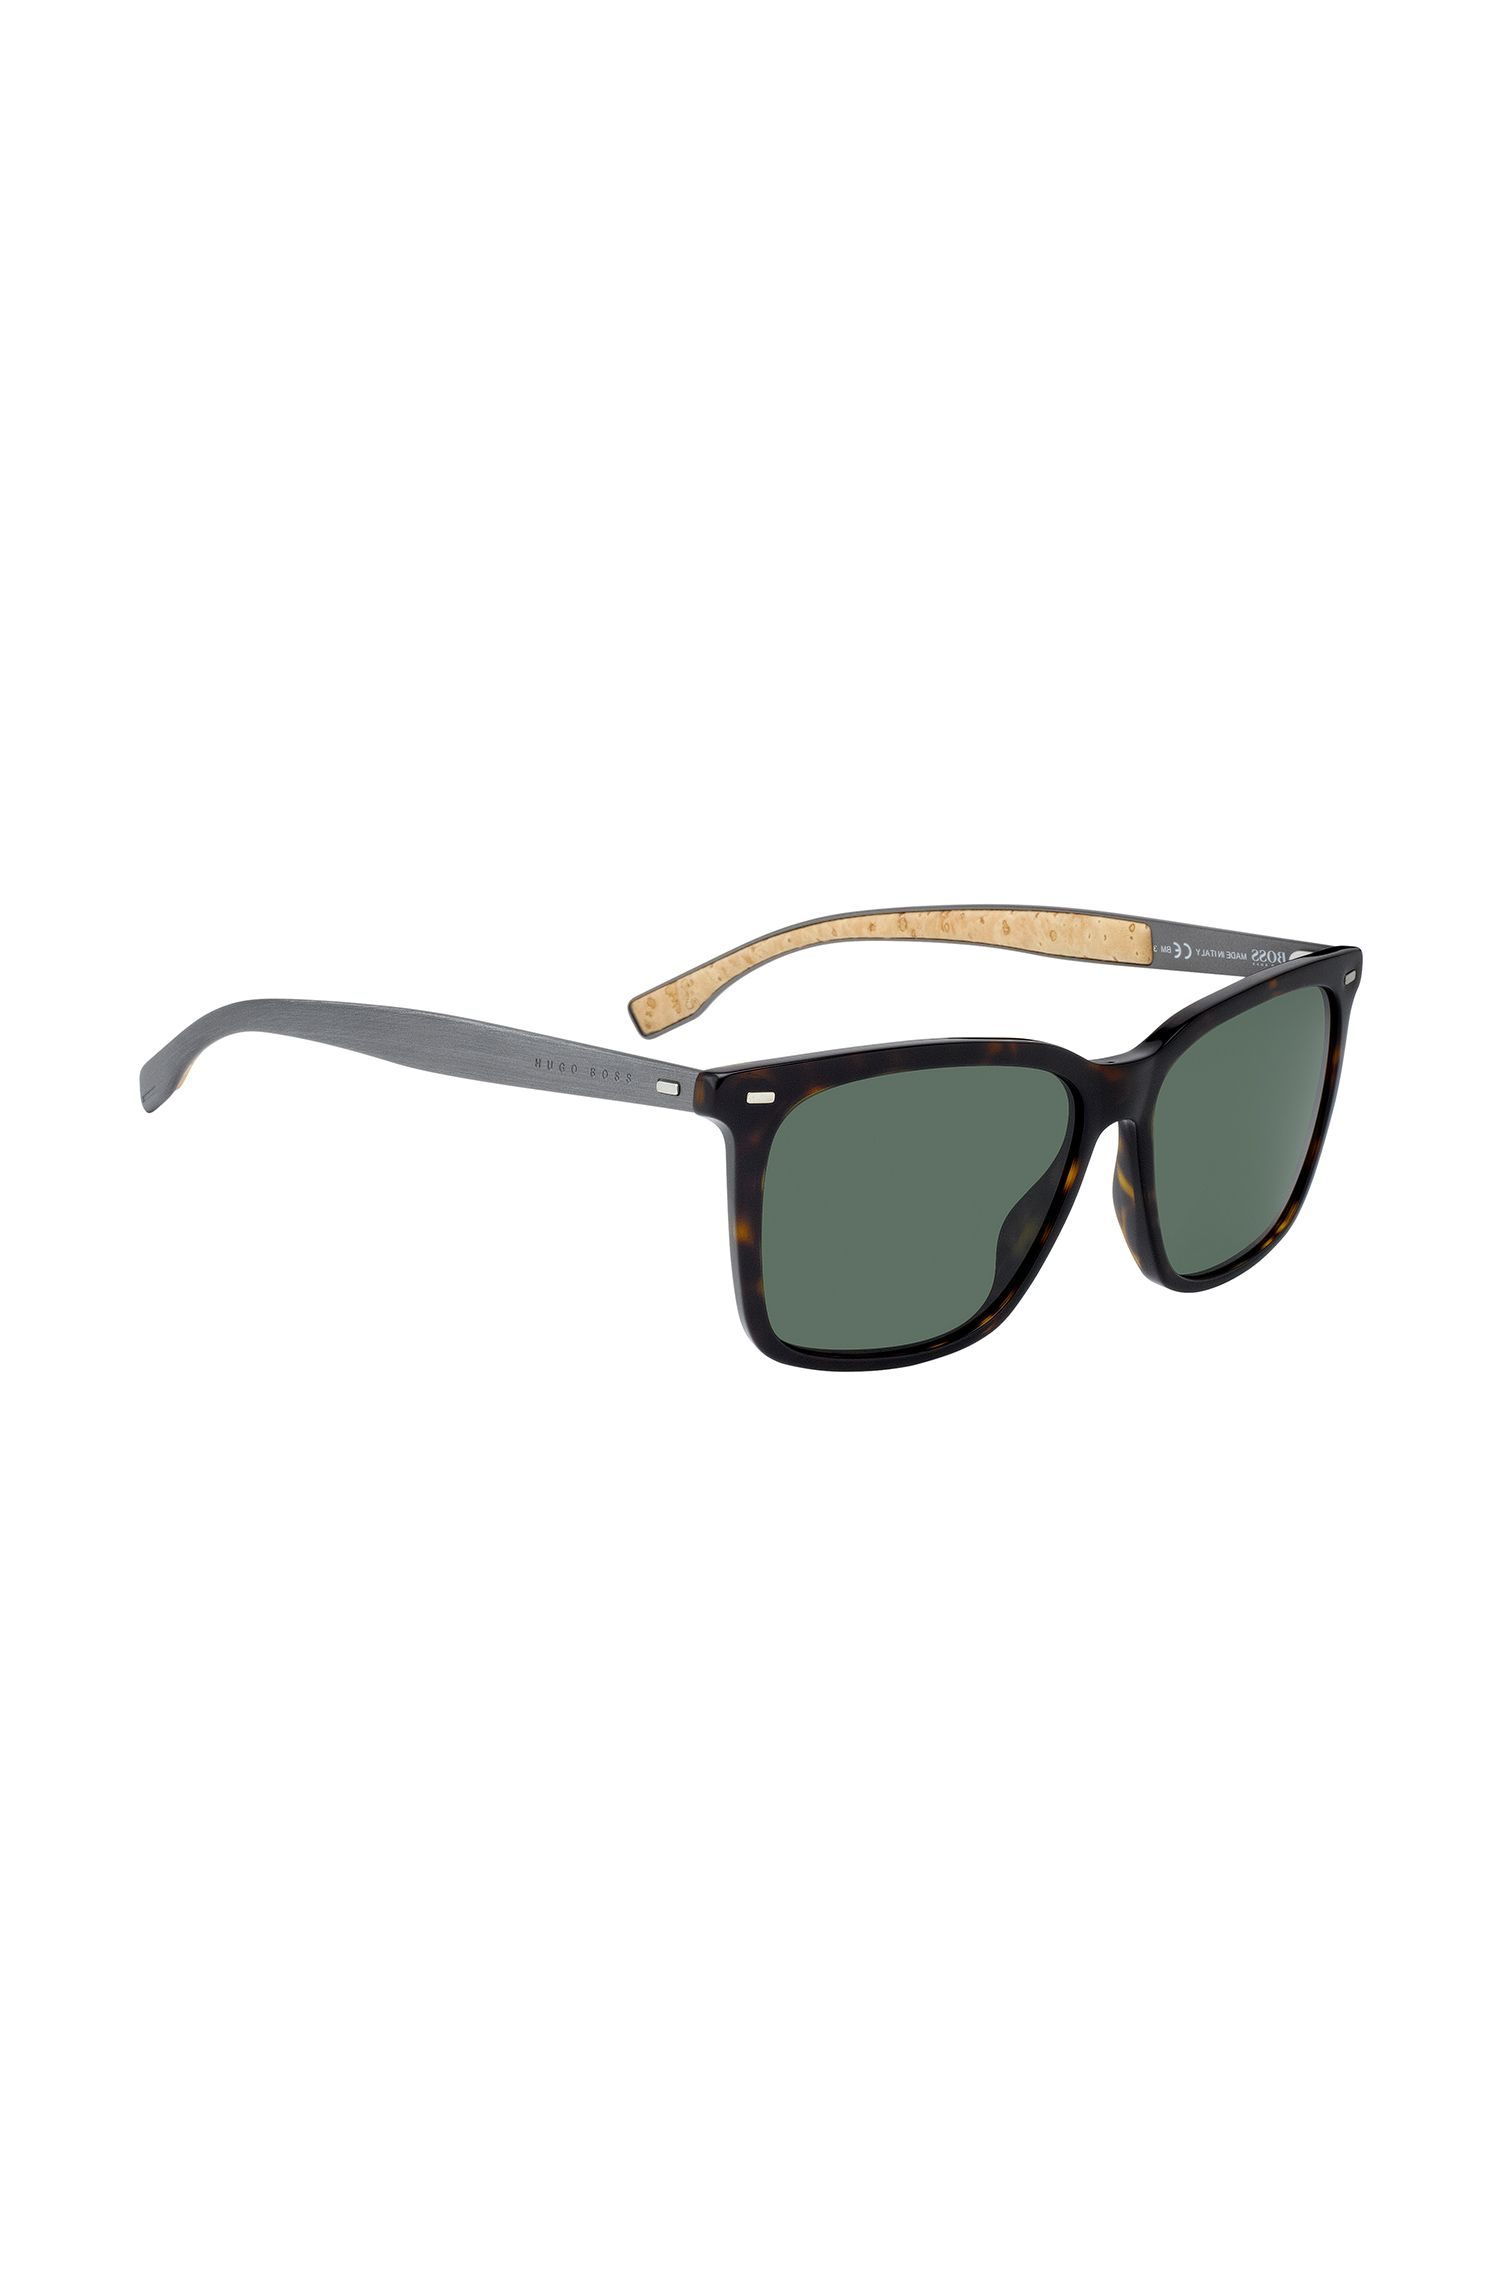 Sunglasses with cork-lined aluminium arms